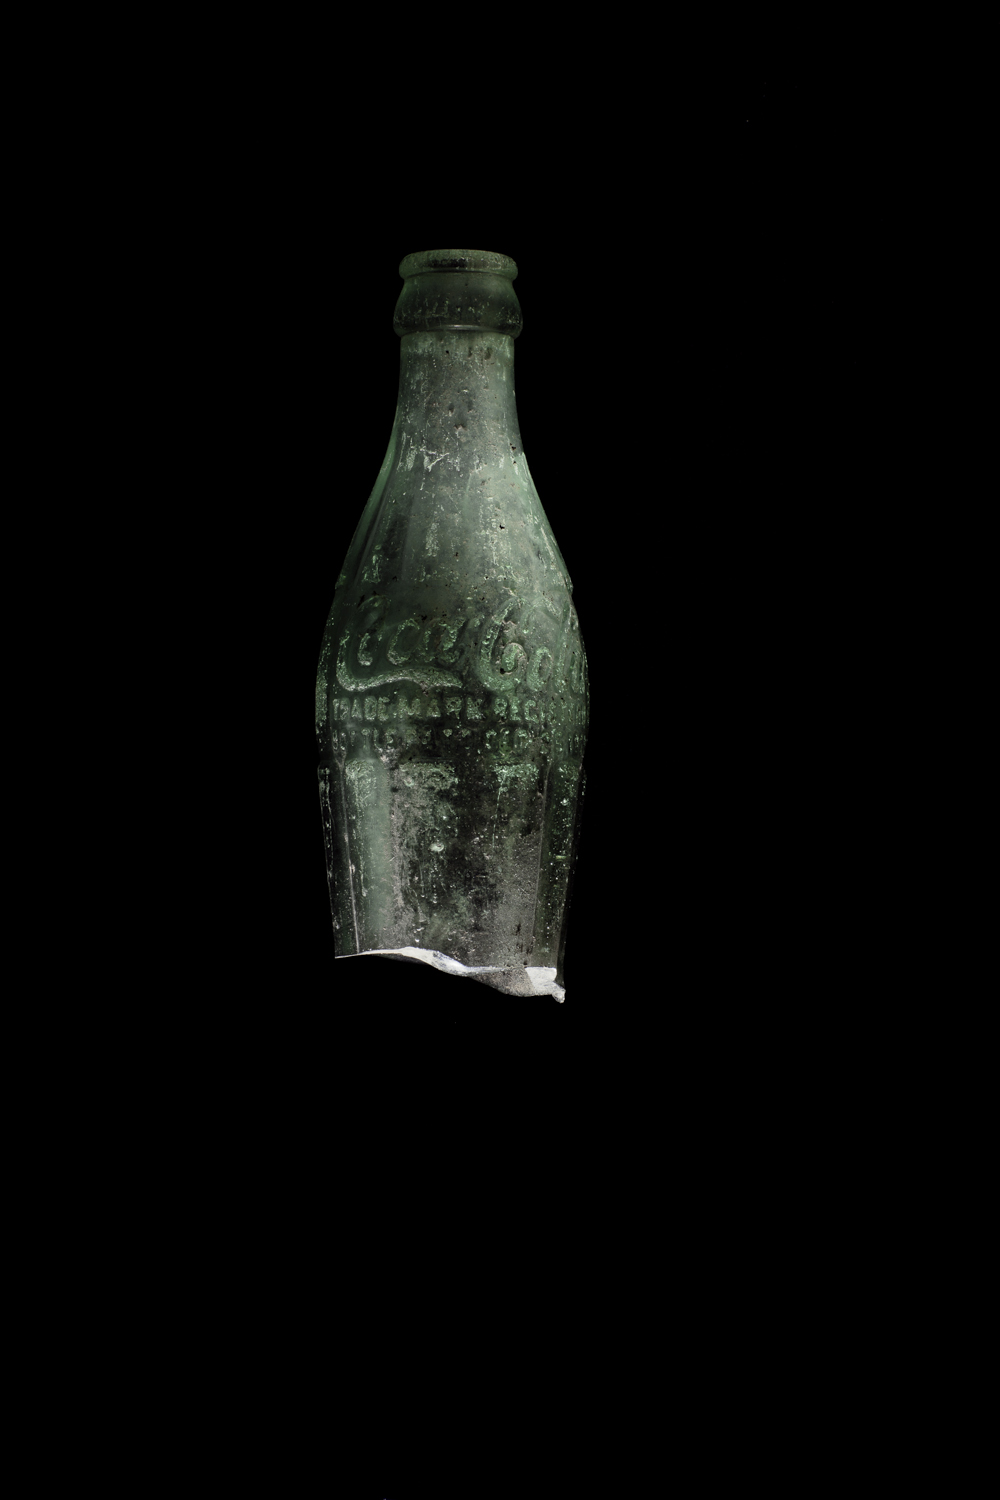 Coke Bottle, Peddocks Island.